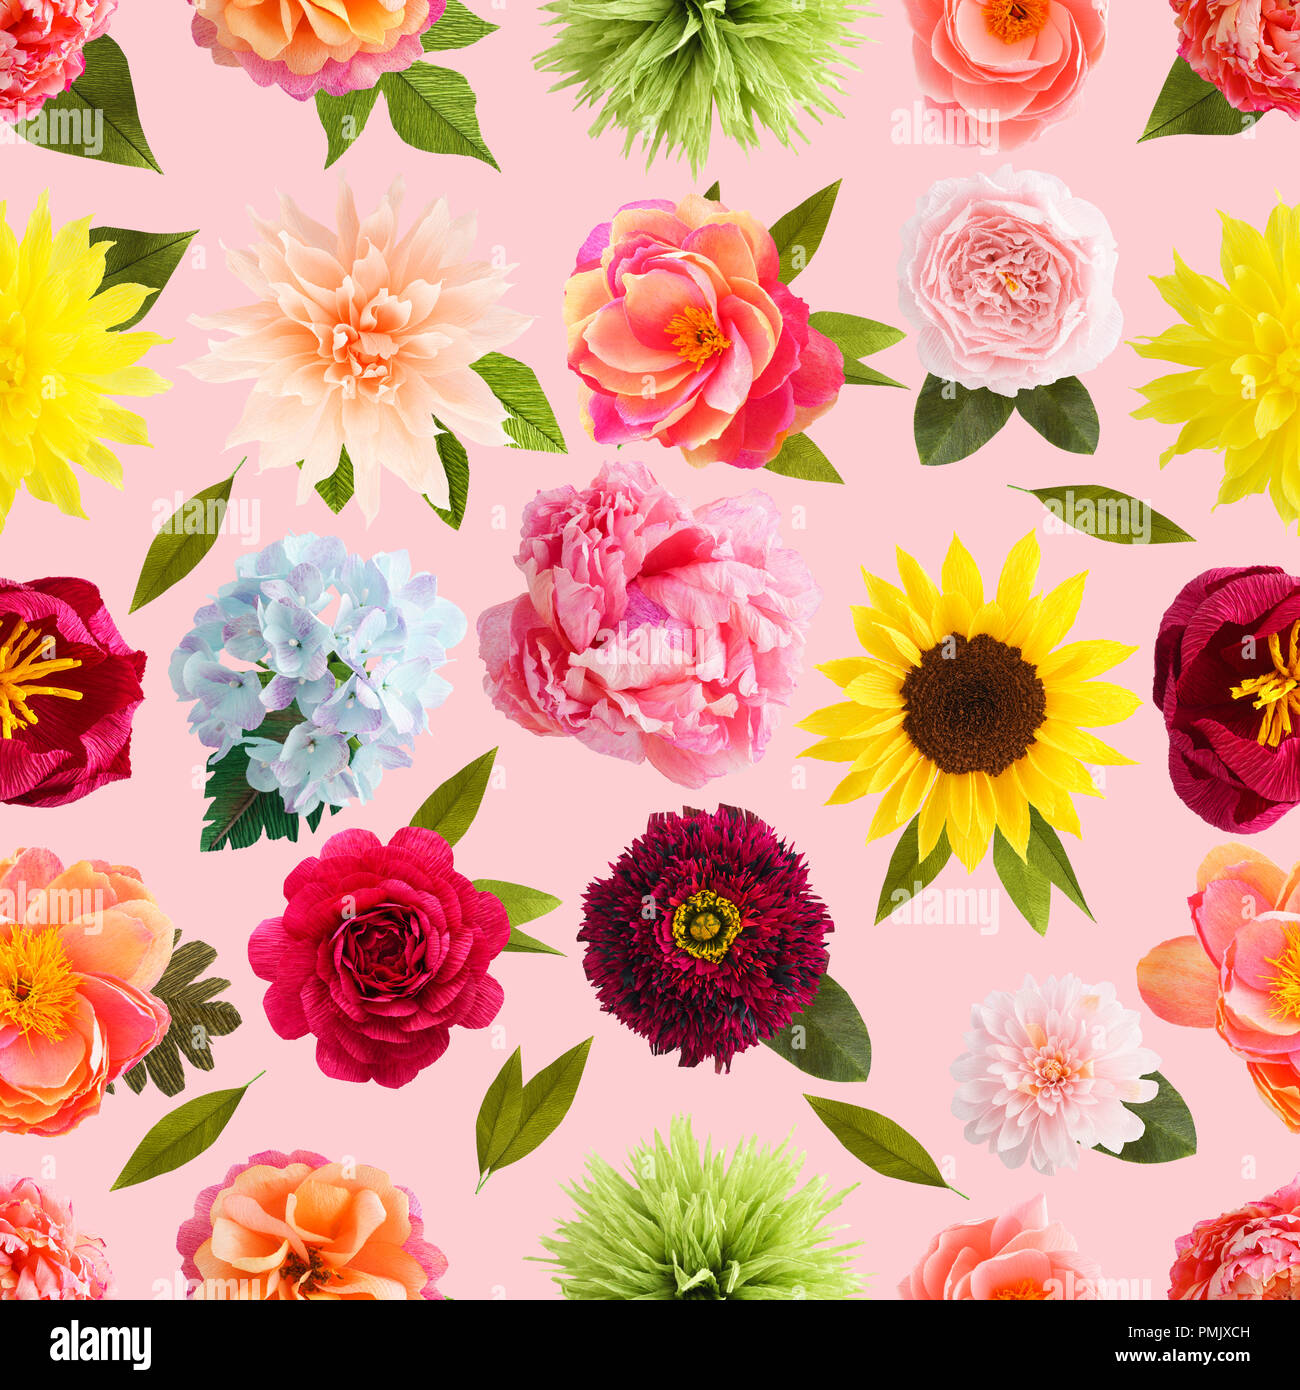 Seamless Pattern With Handmade Crepe Paper Flowers On Pink Colored